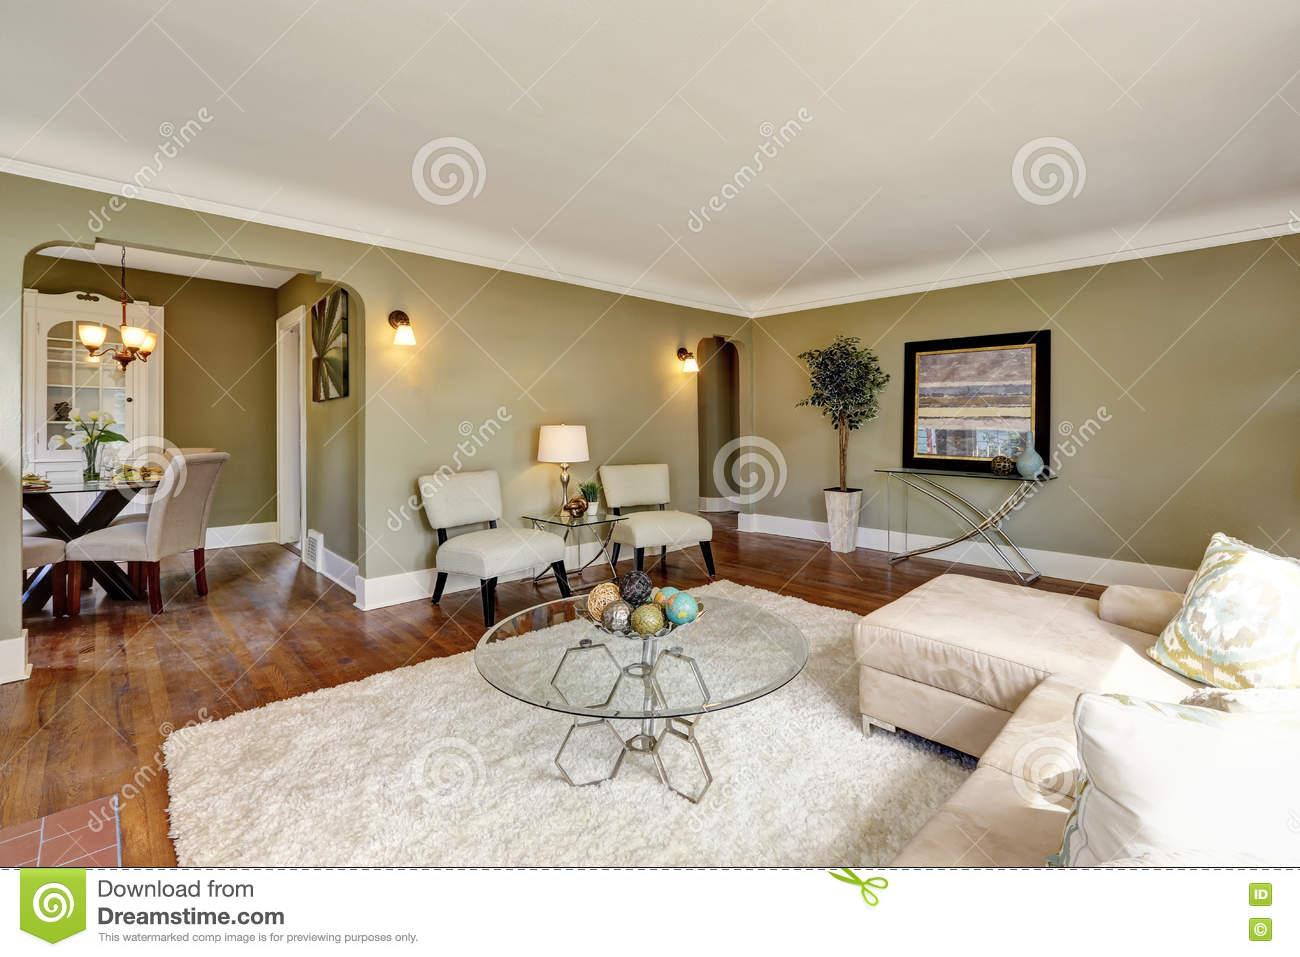 craftsman home interior design craftsman house living room interior design stock photo 17004